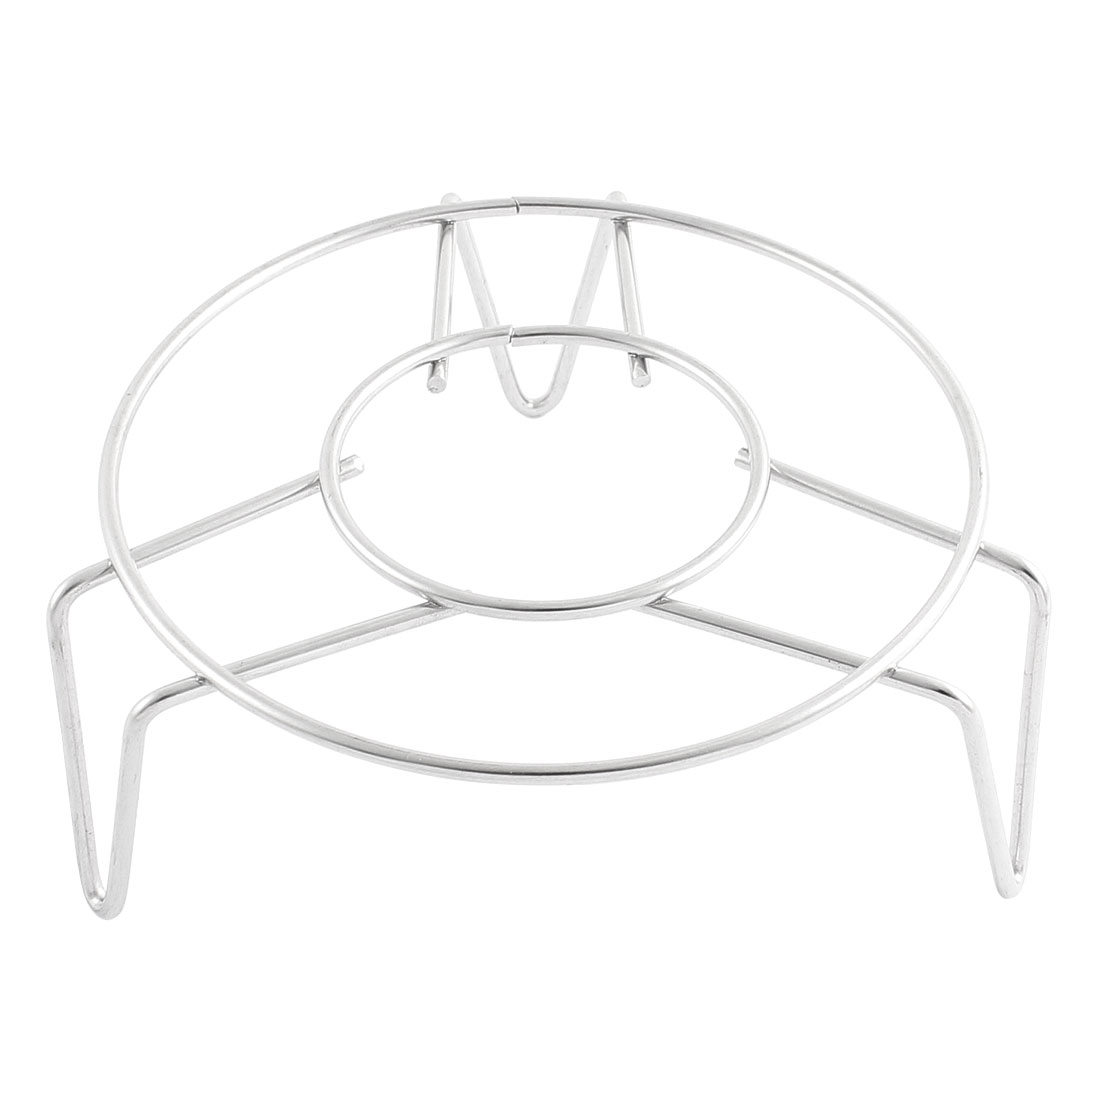 Household Cookware Metal Round Food Steaming Steamer Rack Stand 4.7 Inch Diameter Silver Tone